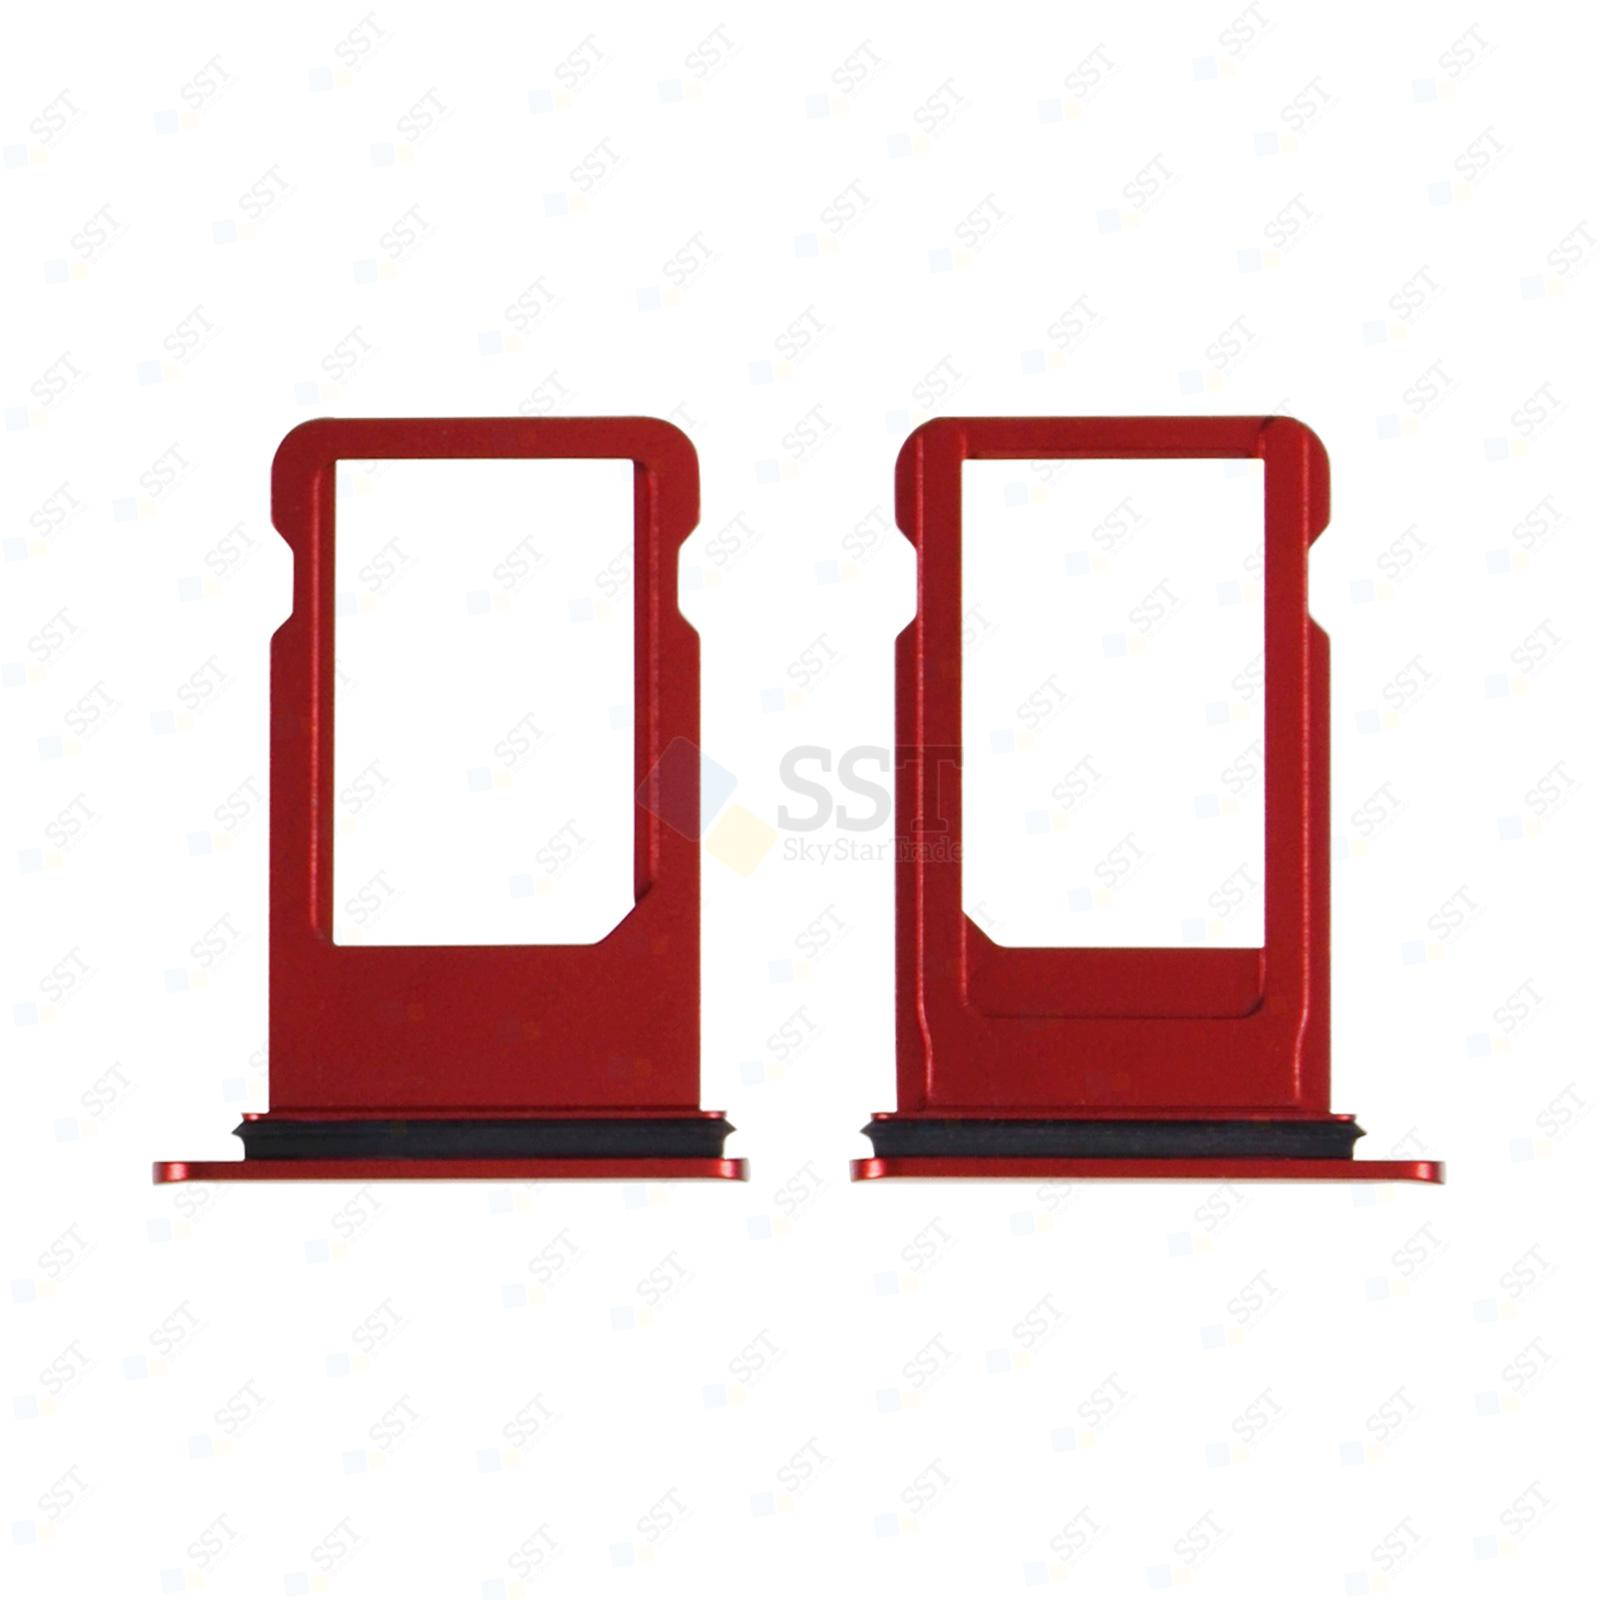 iPhone 8 A1863 A1905 A1906 SimCard Holder Sim Tray with Red